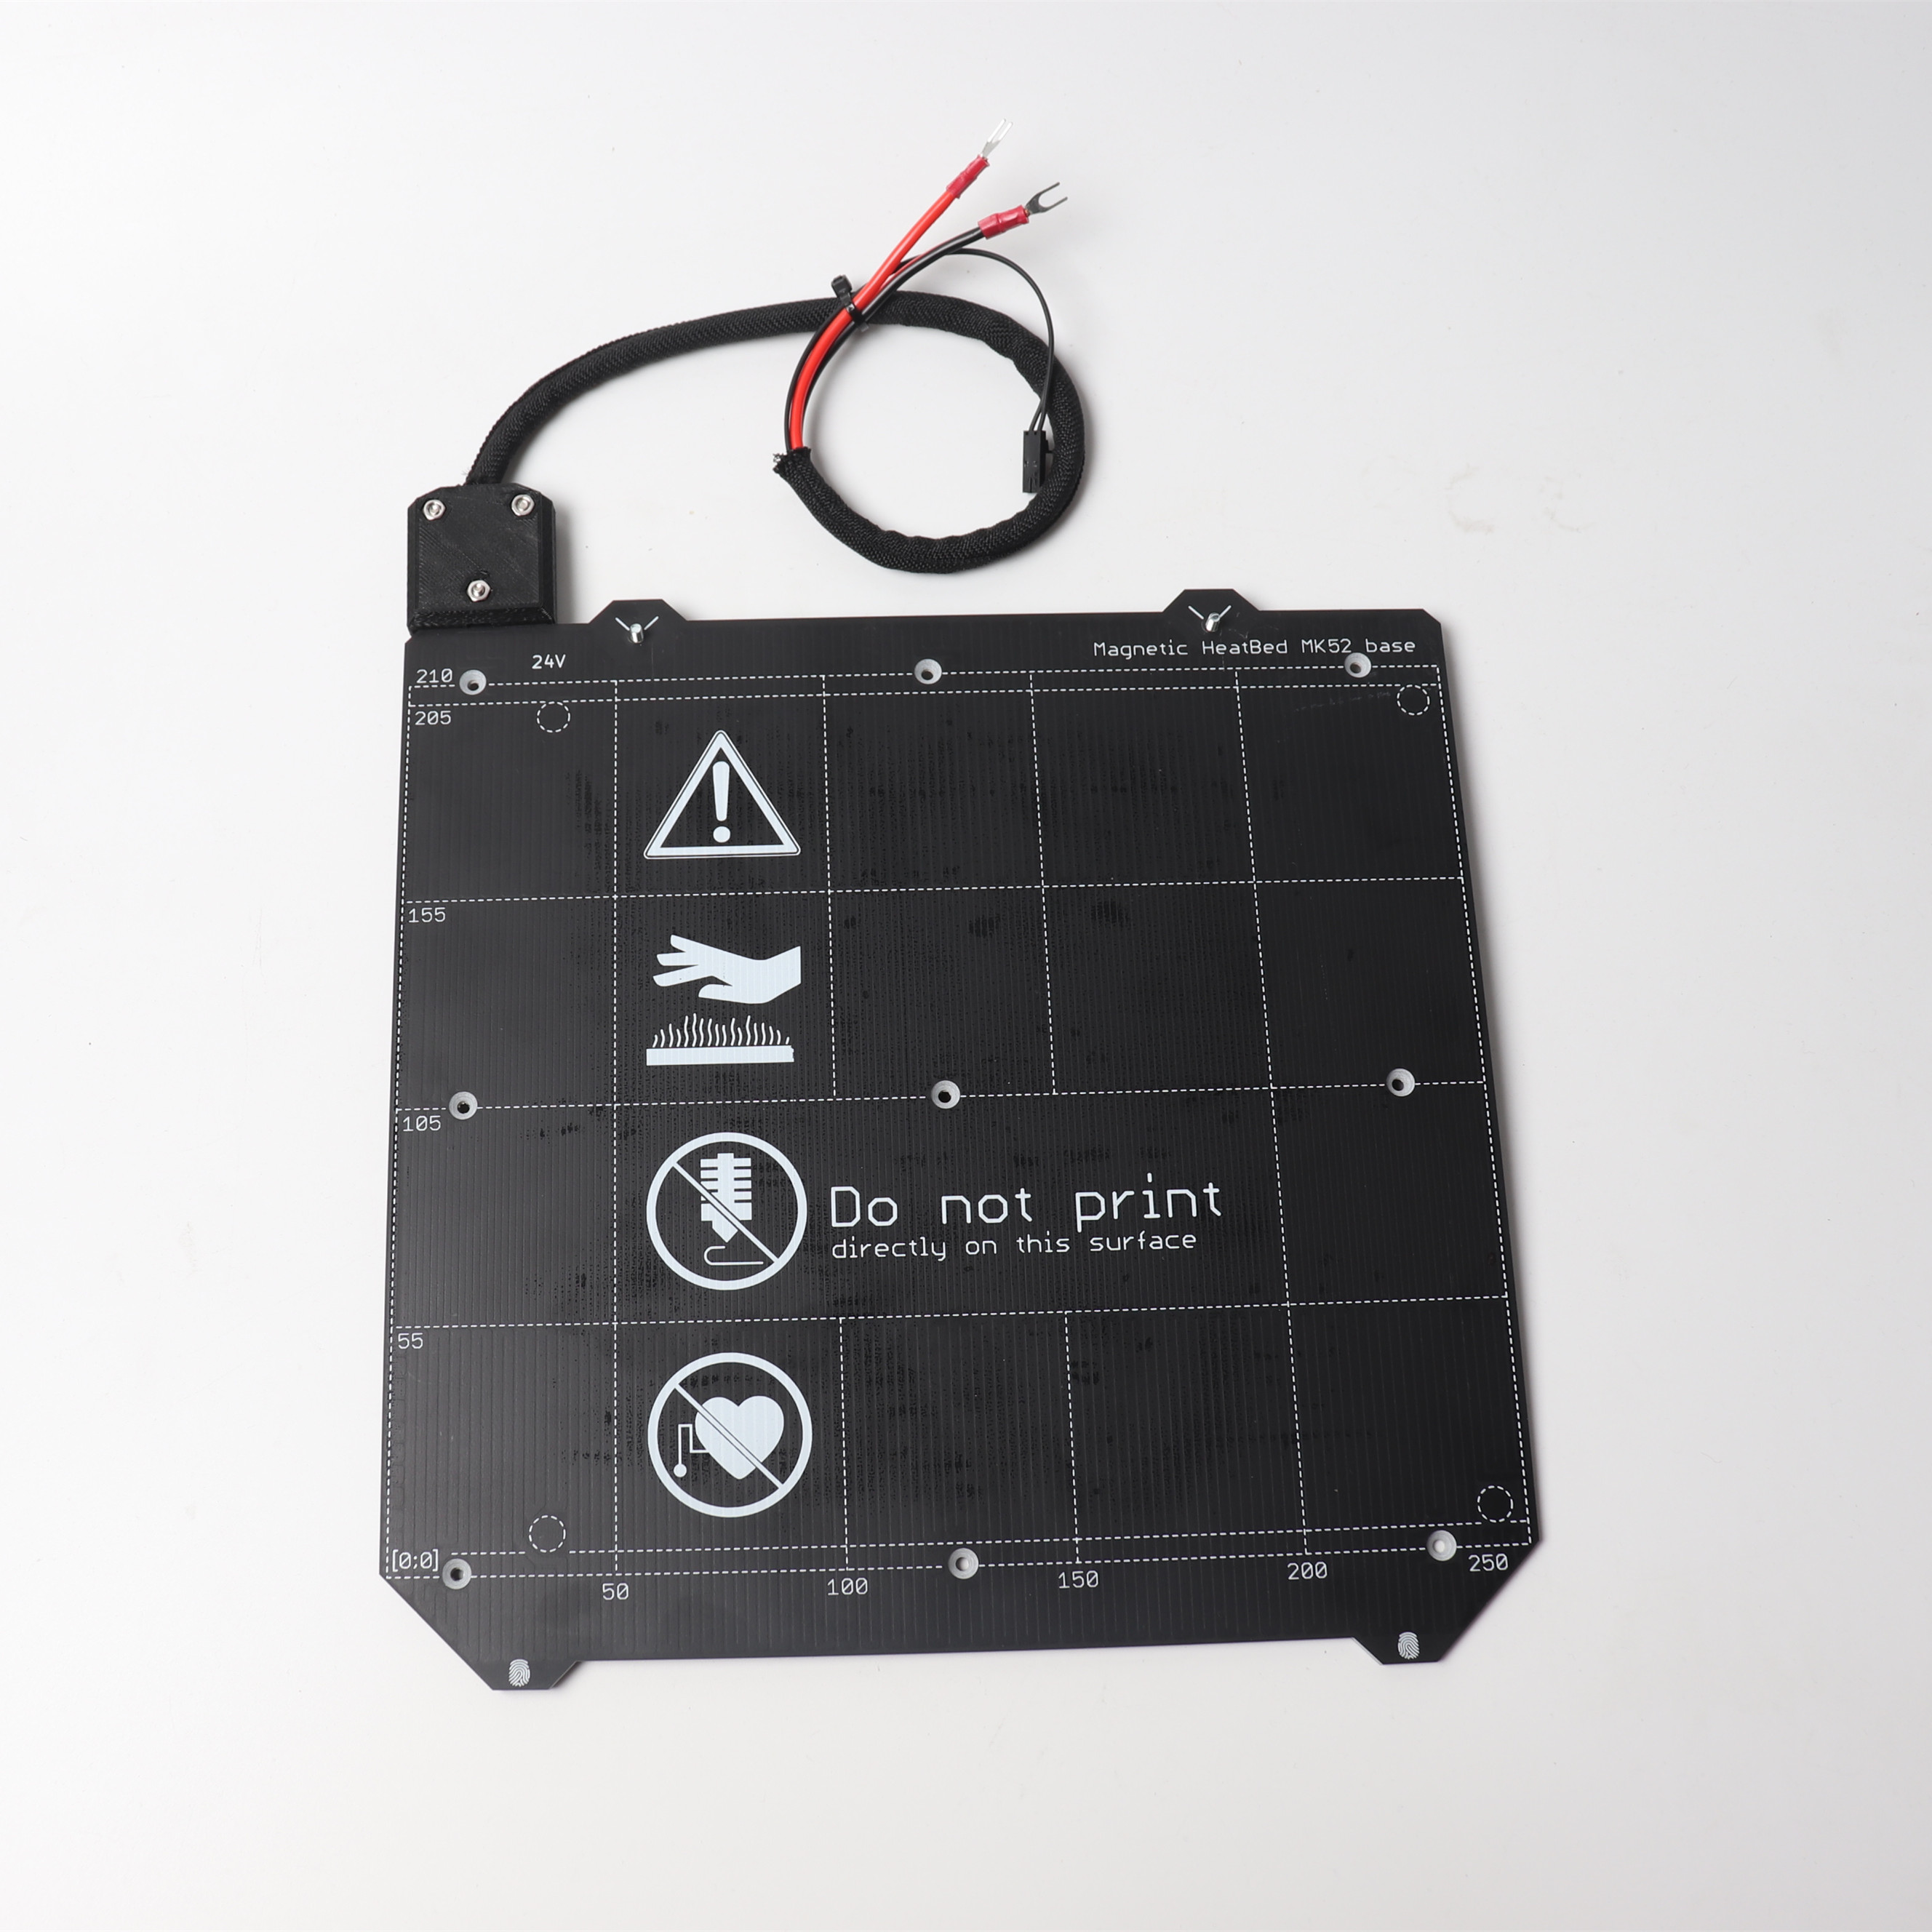 Prusa i3 MK3 Bear Upgrade,2040 V SLOT aluminum extrusions